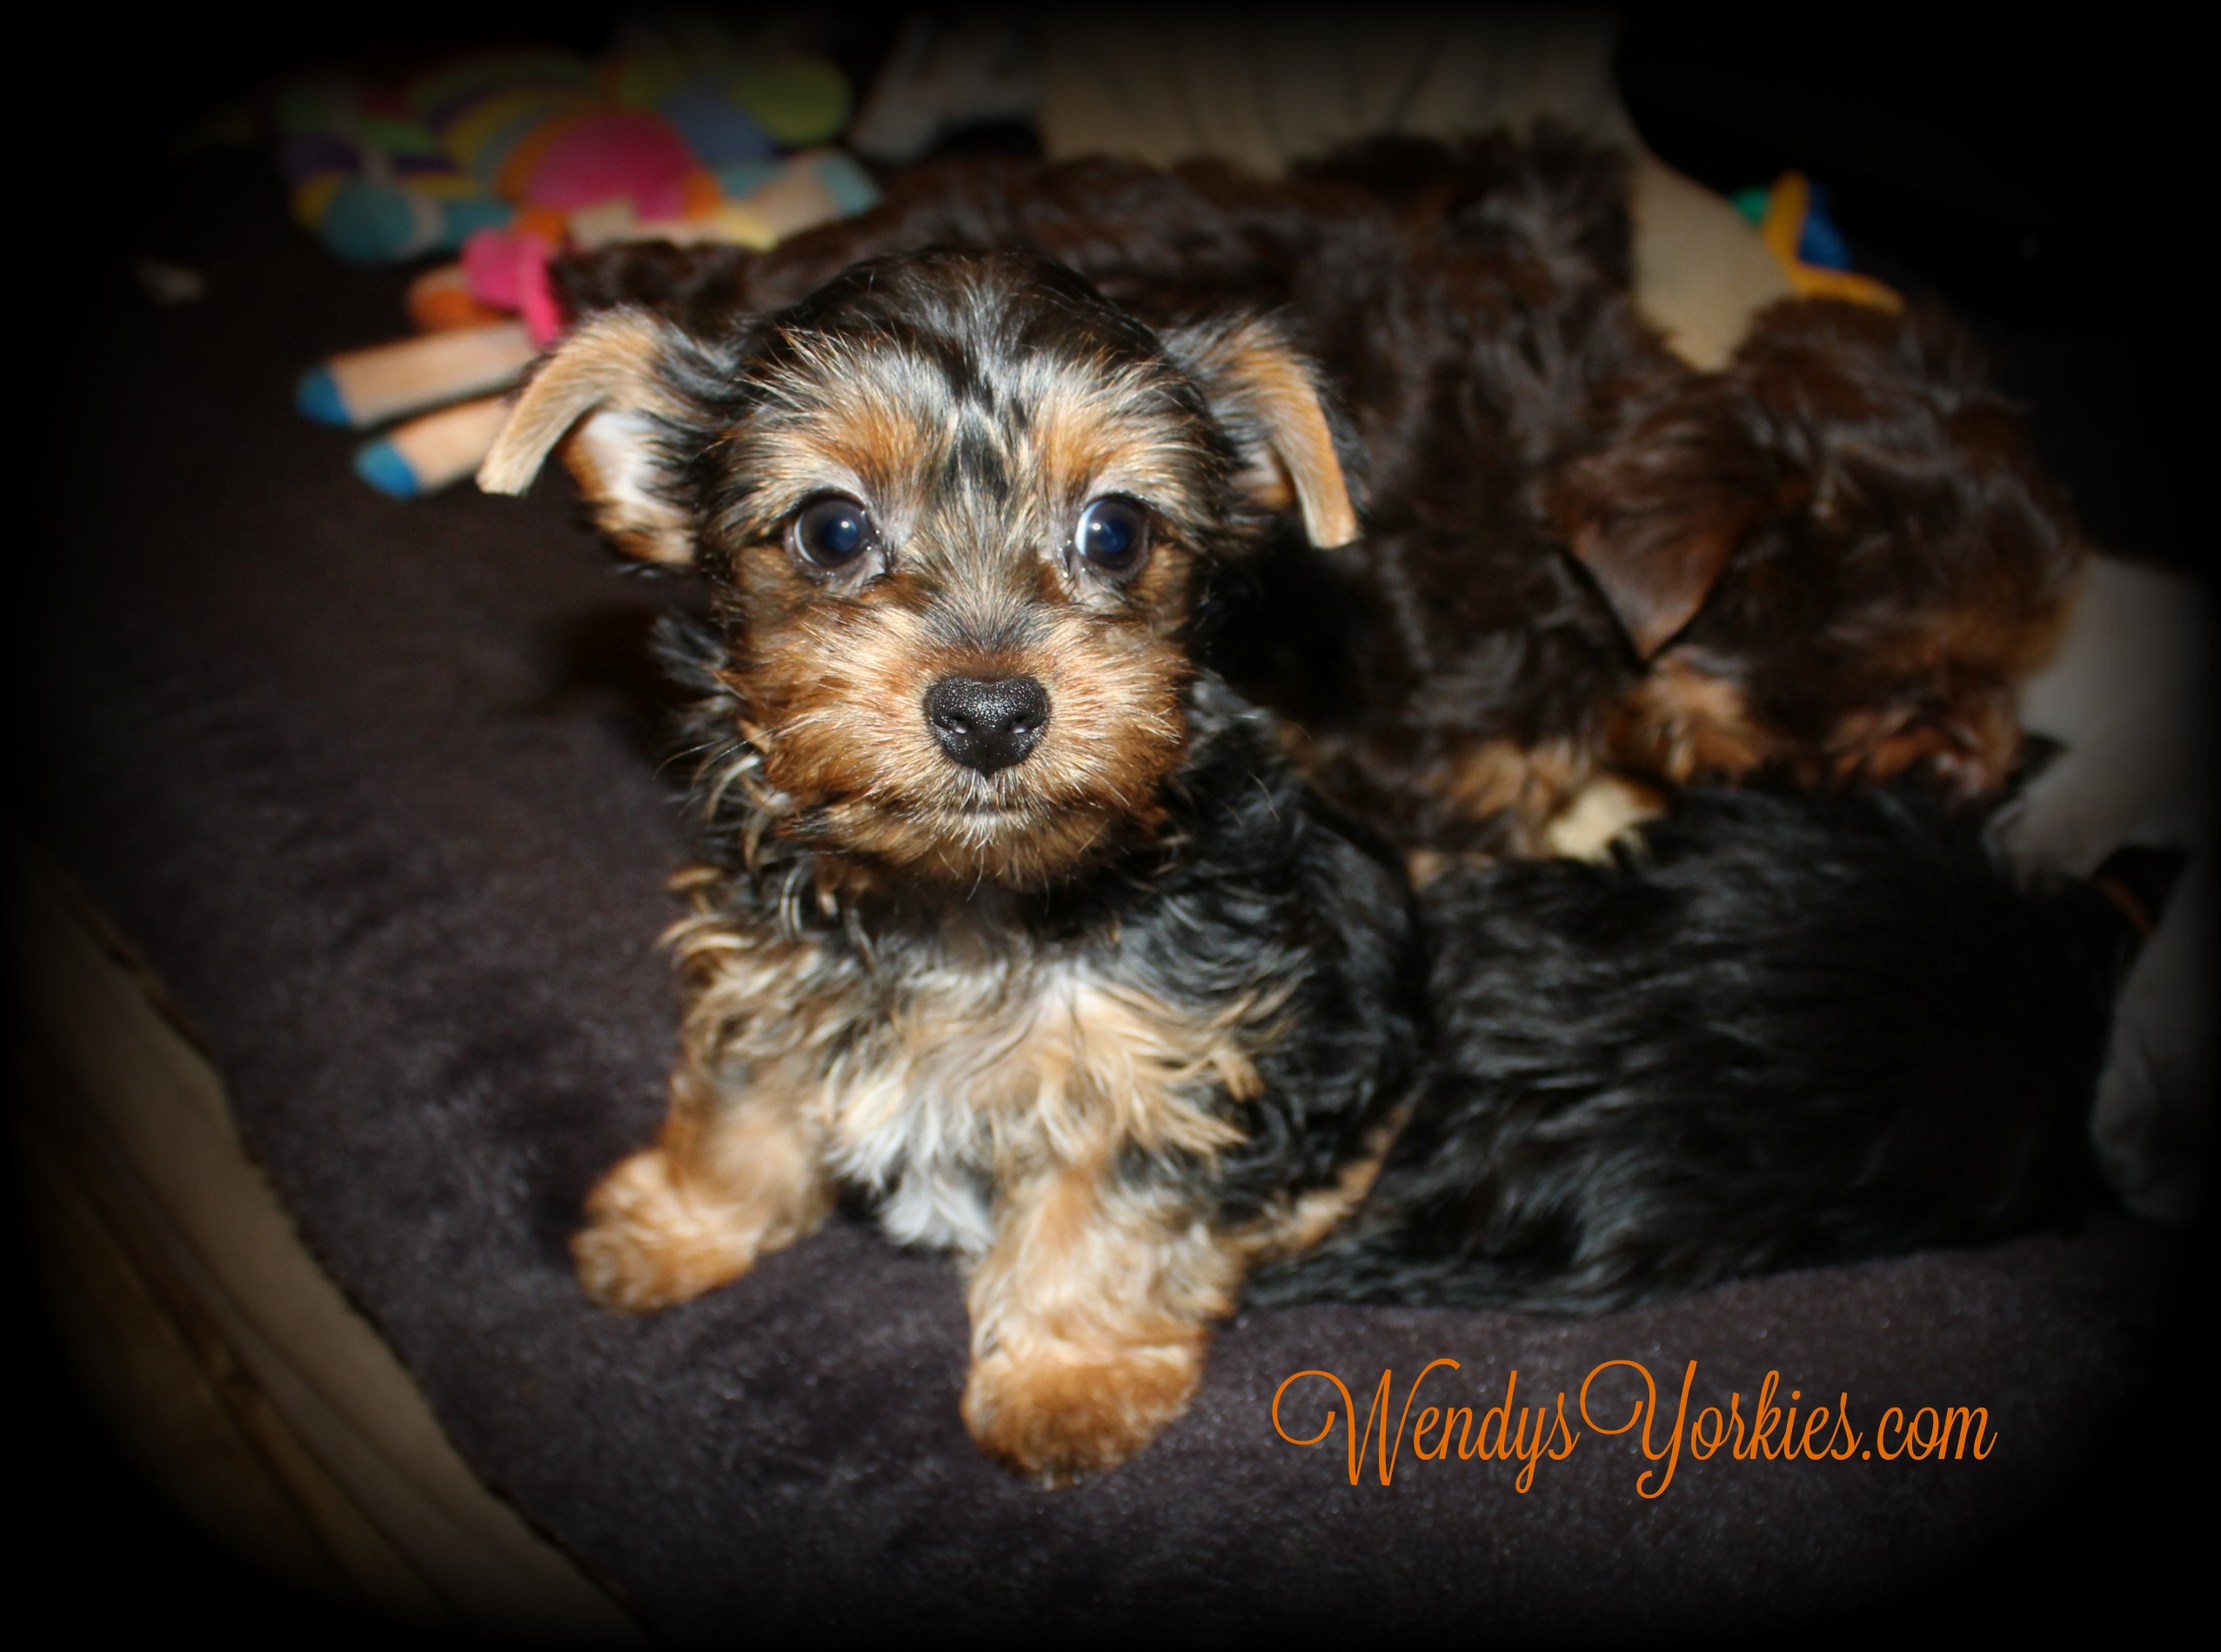 TEacup Male Yorkie puppies for sale, WendysYorkies.com, Anna m2